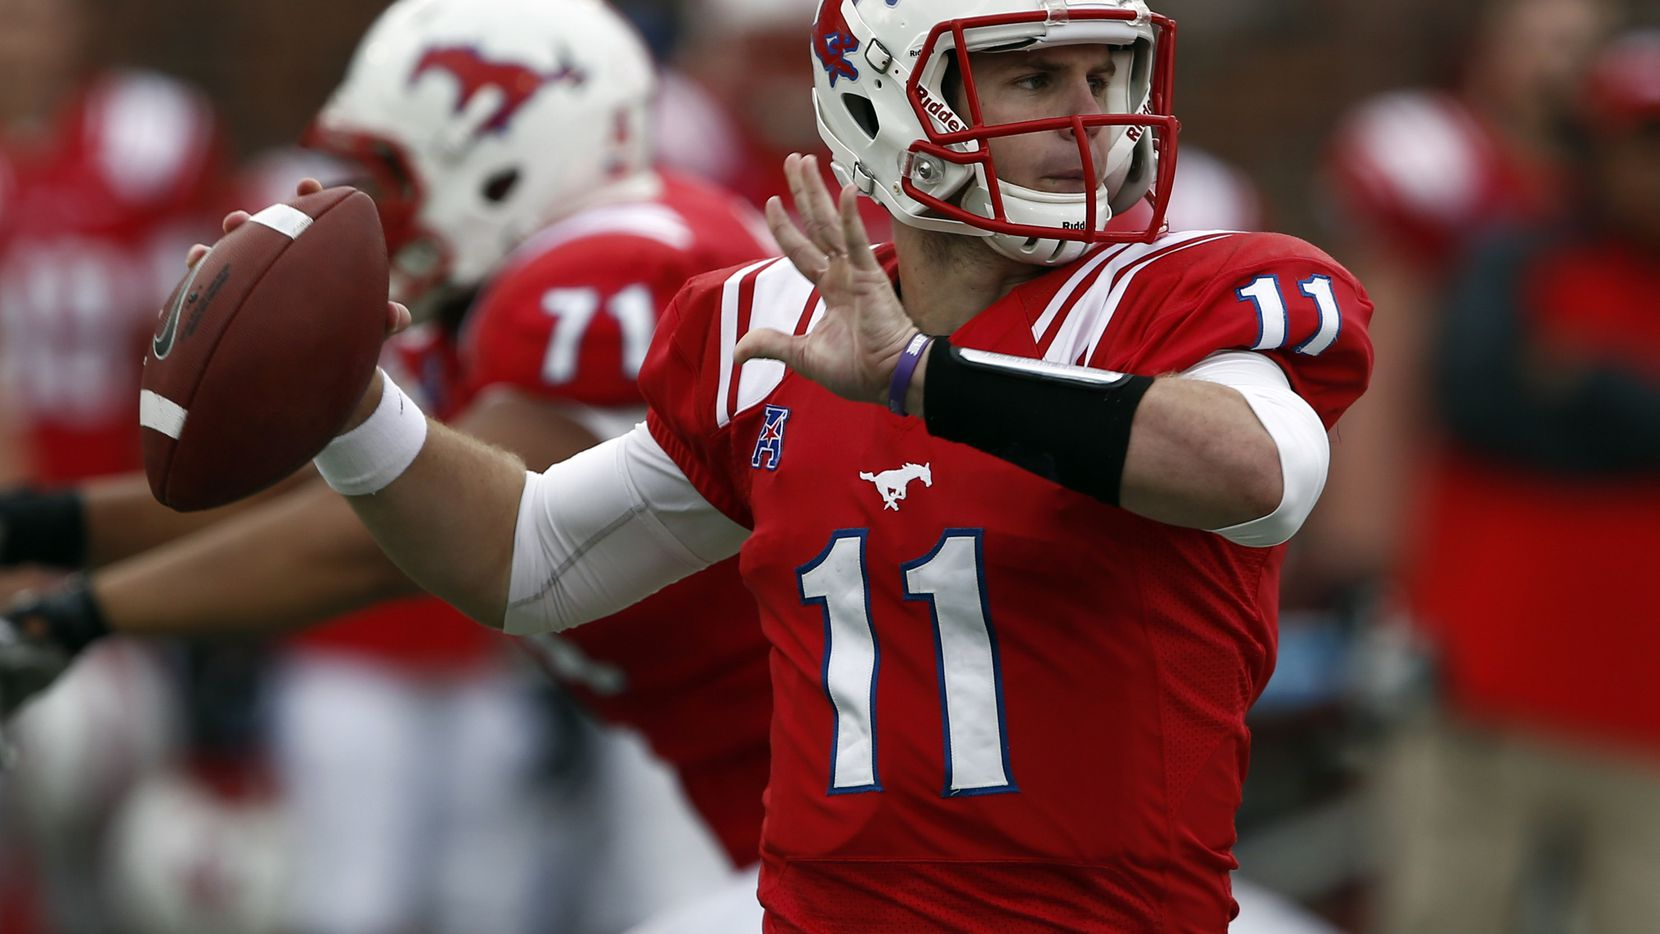 Garrett Gilbert Passes For 6 Tds As Smu Rallies From 21 Down To Beat Temple 59 49